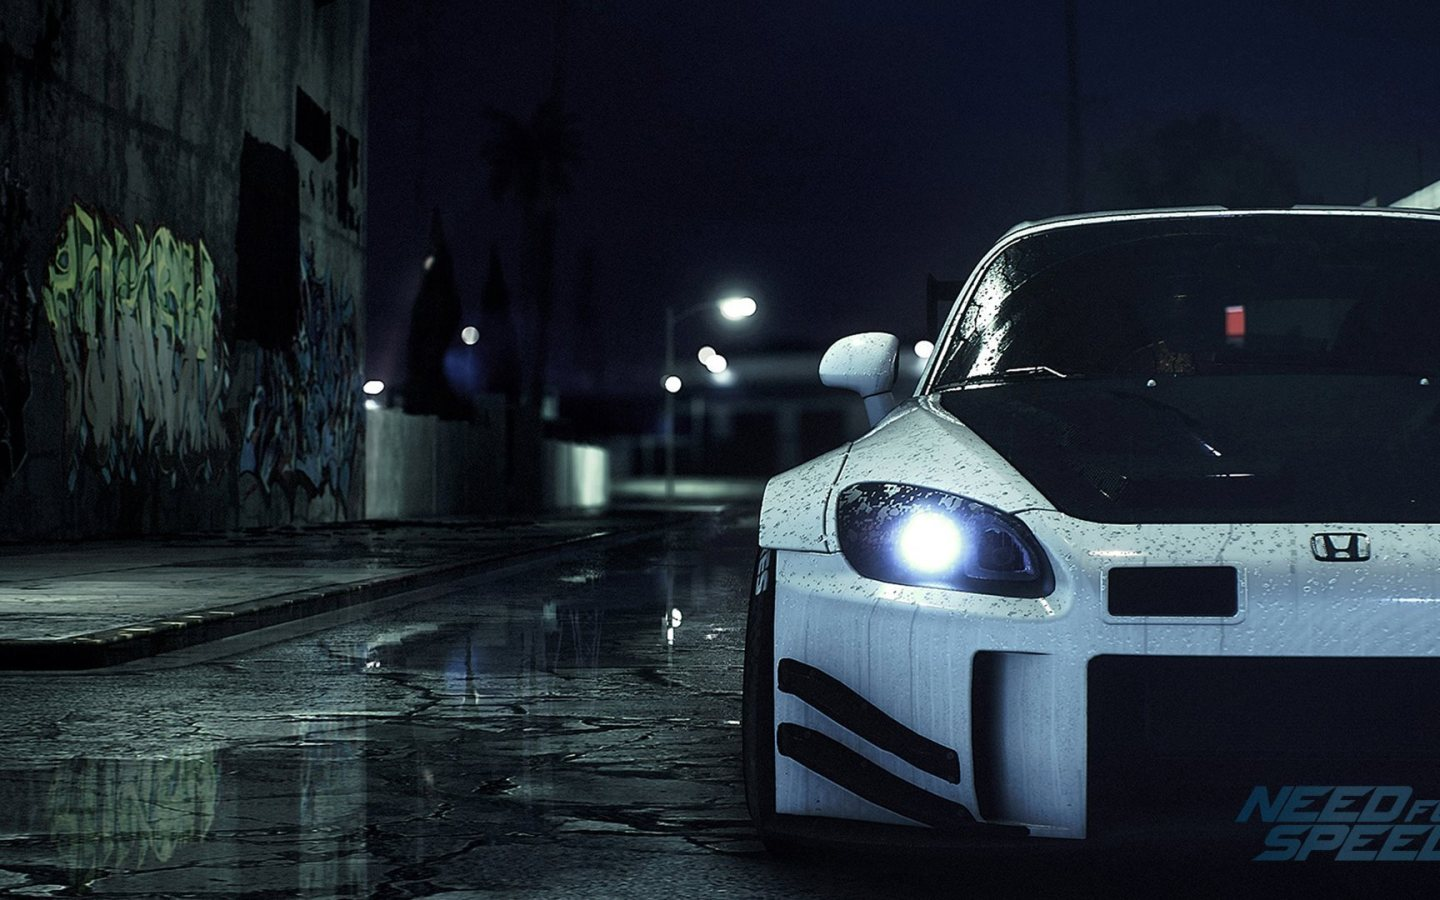 Need for Speed HD Wallpaper Background 25845 Wallur 1440x900